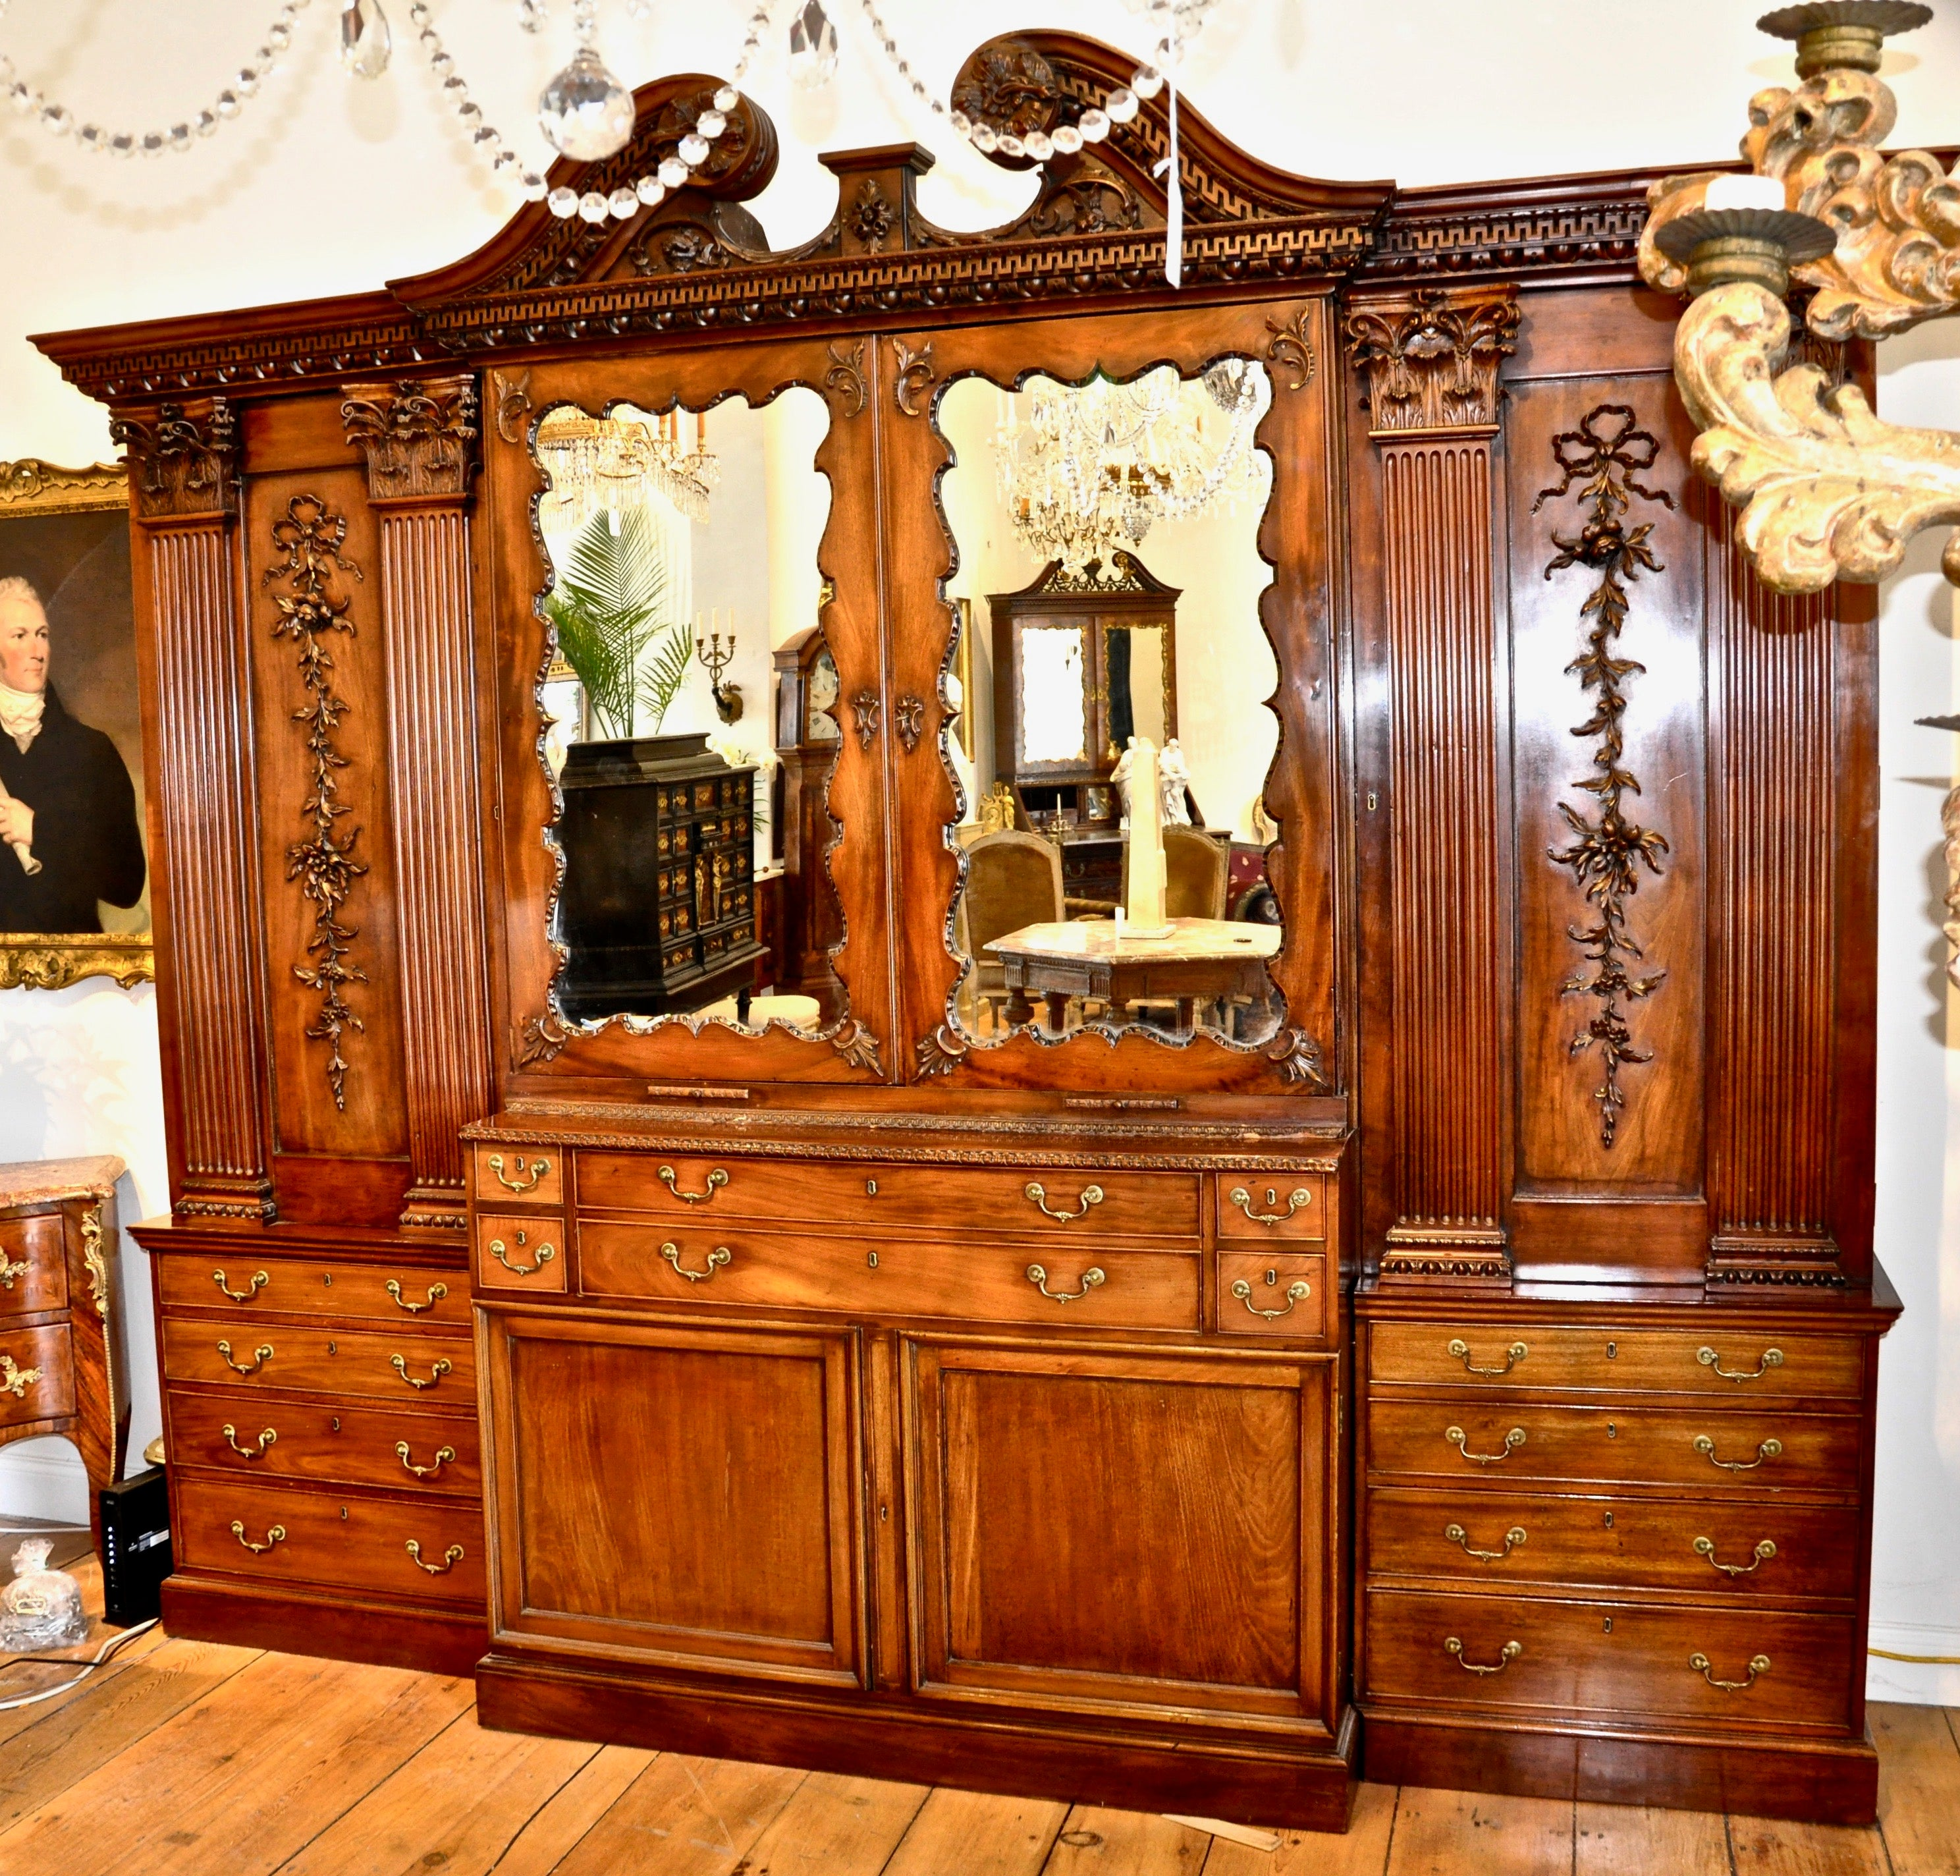 Cupboard Italian Furniture Wooden Brass Antique Style Living Room 4 Panels Mild And Mellow Cabinets & Cupboards Antiques